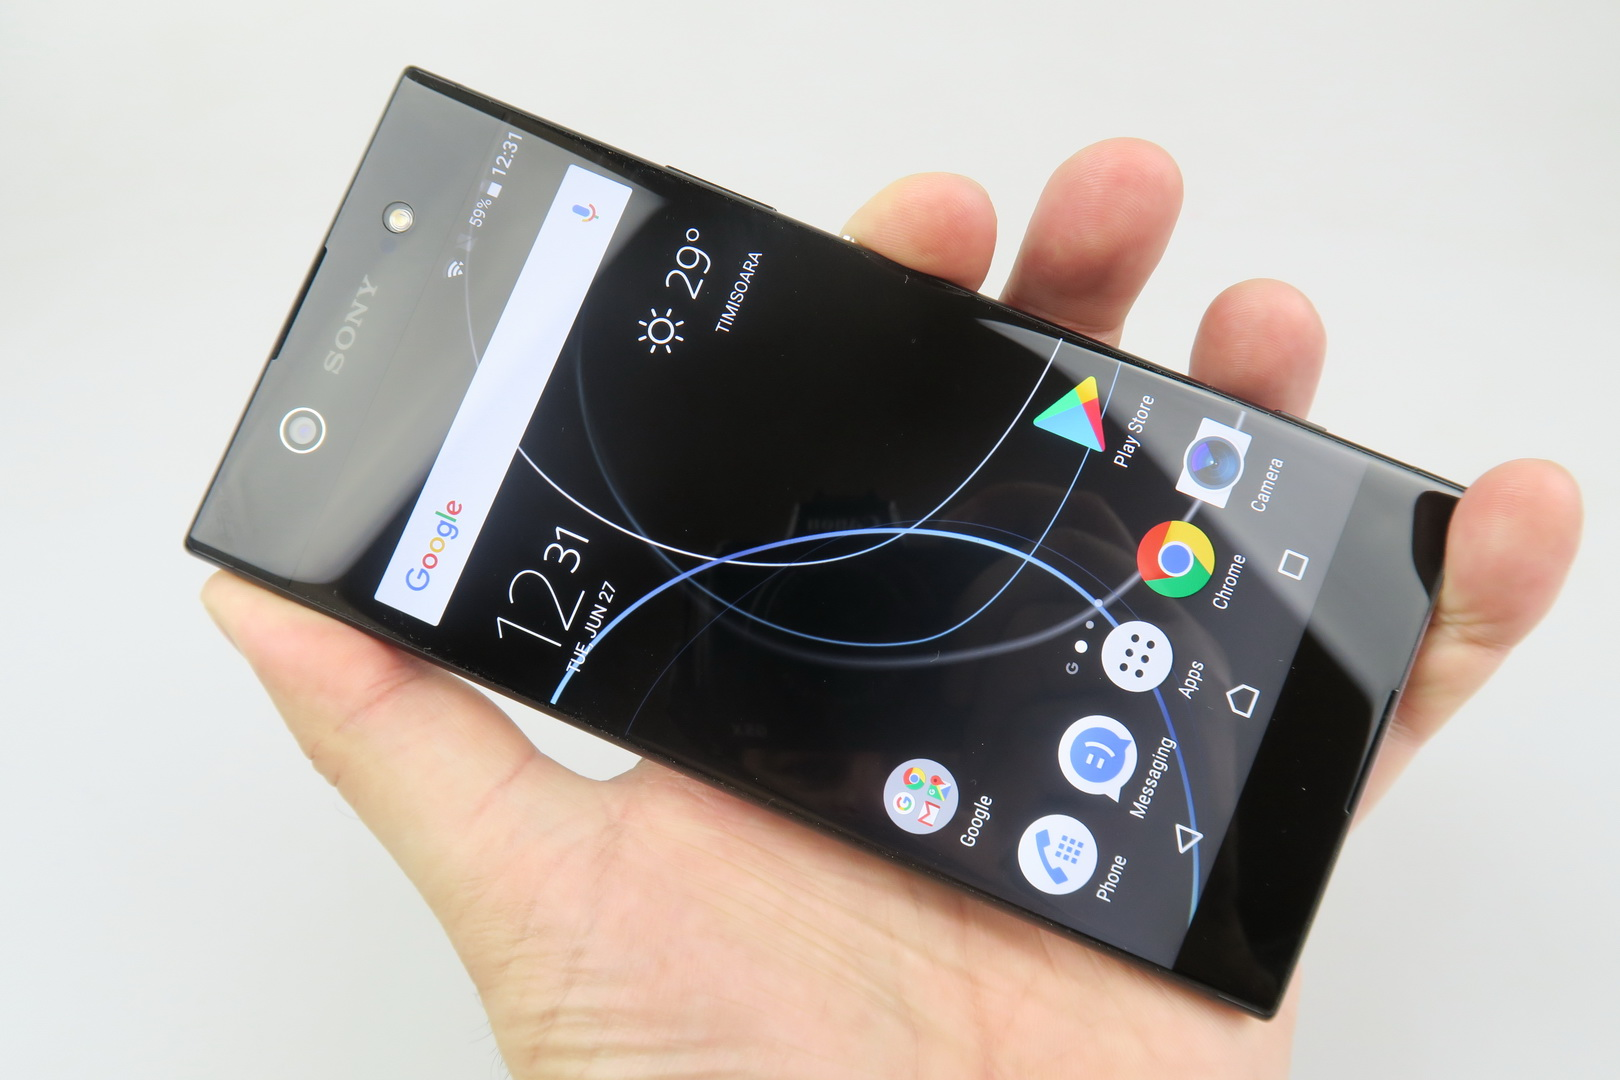 sony xperia xa1 ultra 068 tablet news. Black Bedroom Furniture Sets. Home Design Ideas